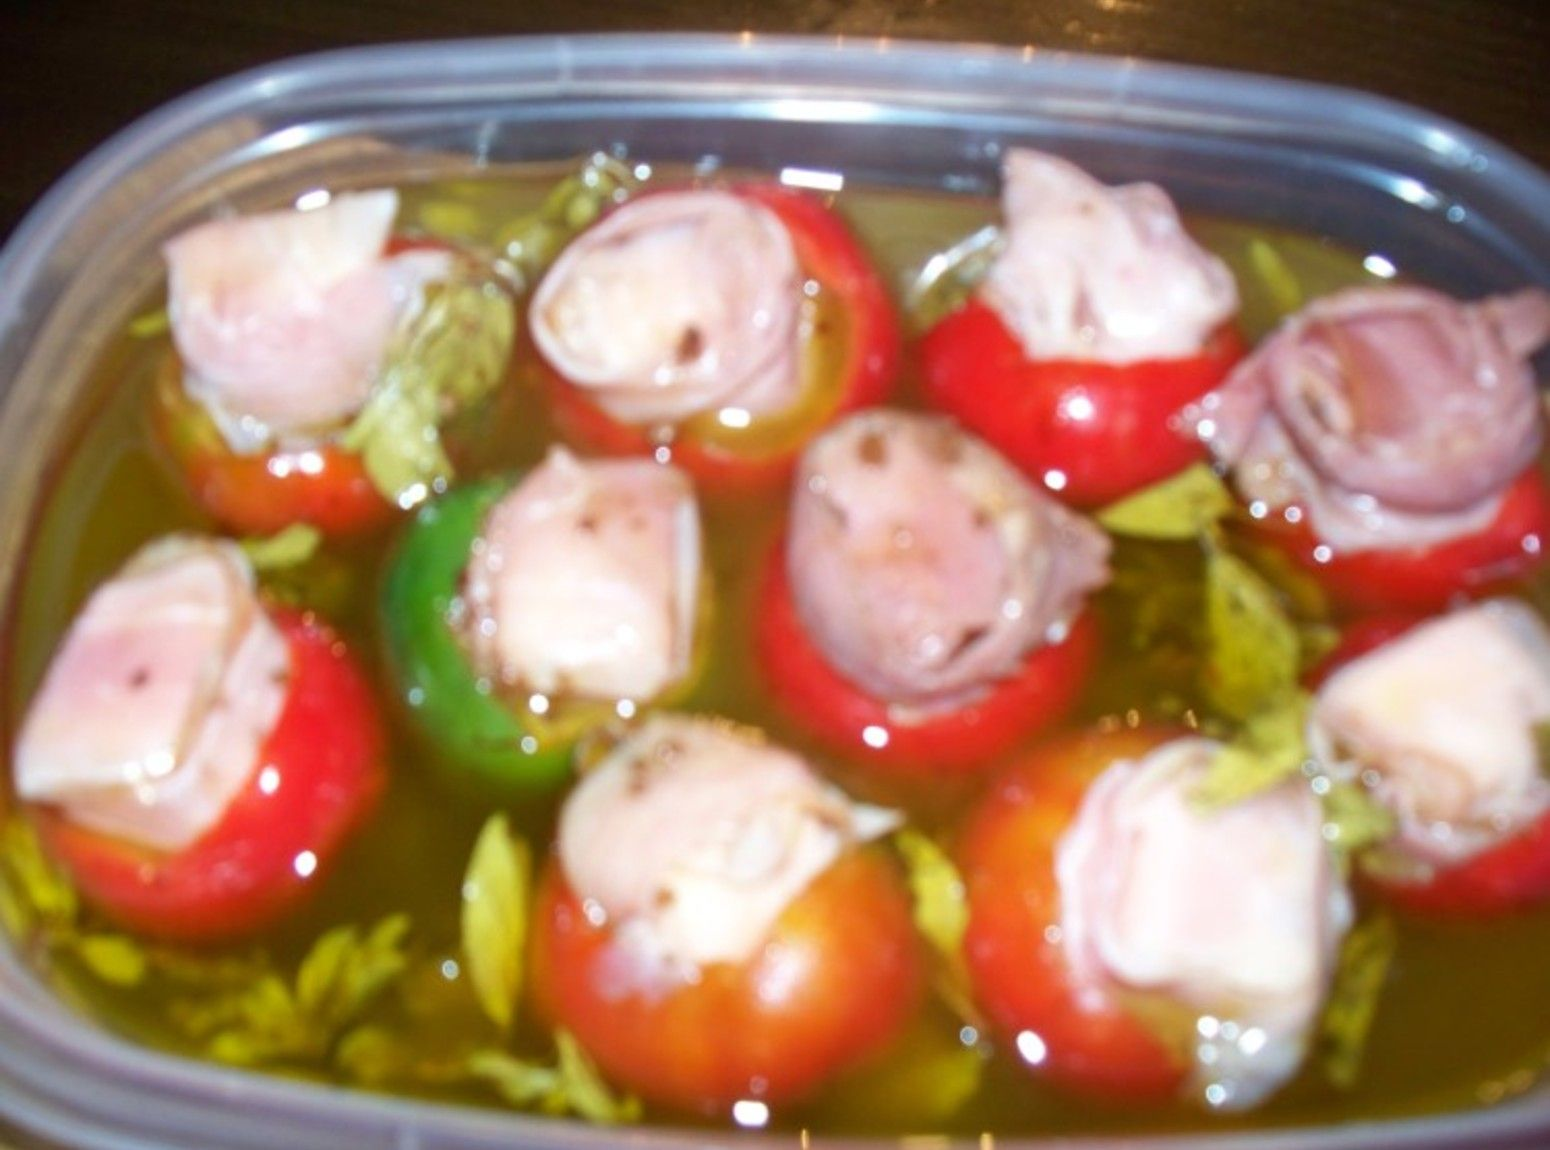 Pickeled Stuffed Cherry Hot Peppers Recipe Hot Pepper Recipes Stuffed Hot Peppers Stuffed Peppers